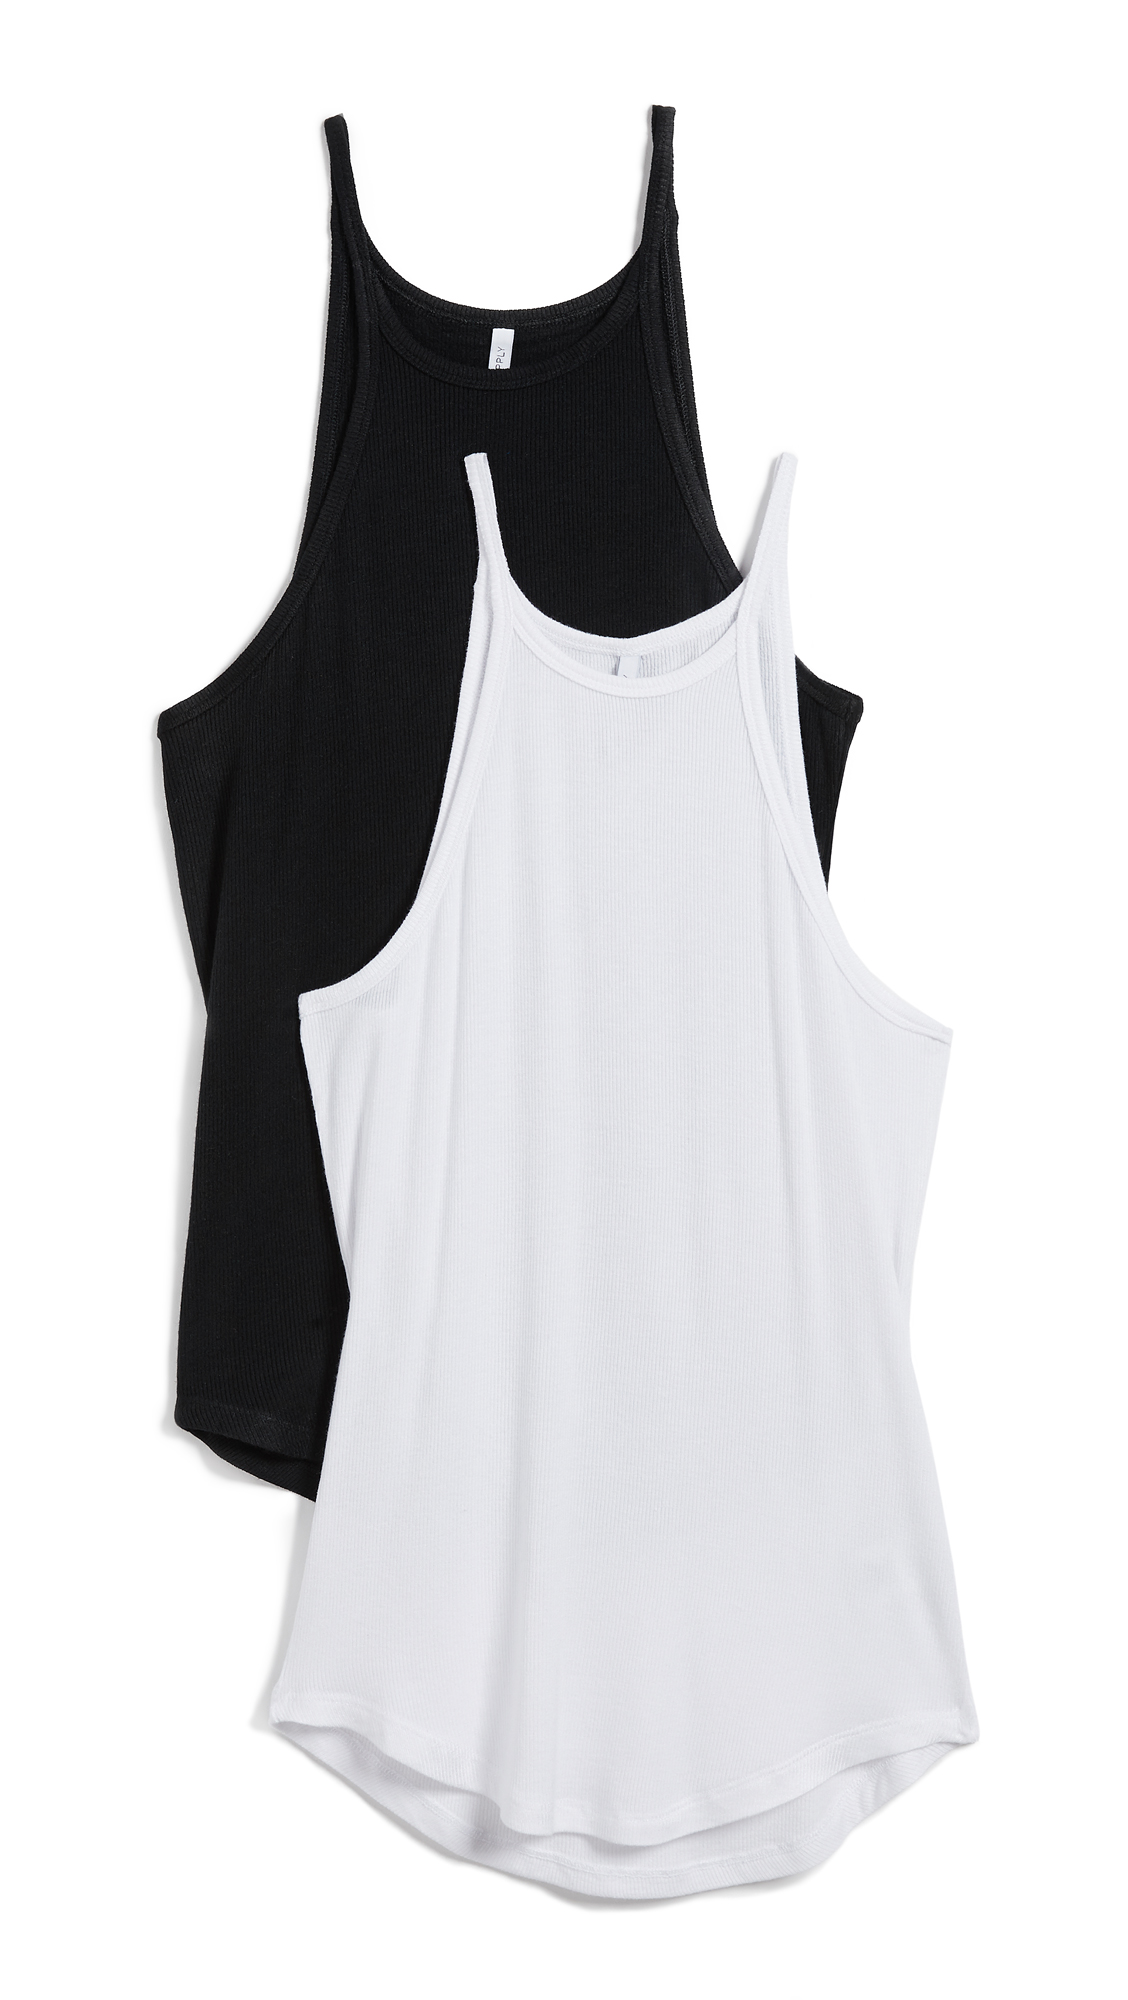 Z Supply The Micro Ribbed Tank Top with High Neck 2 Pack In White & Black